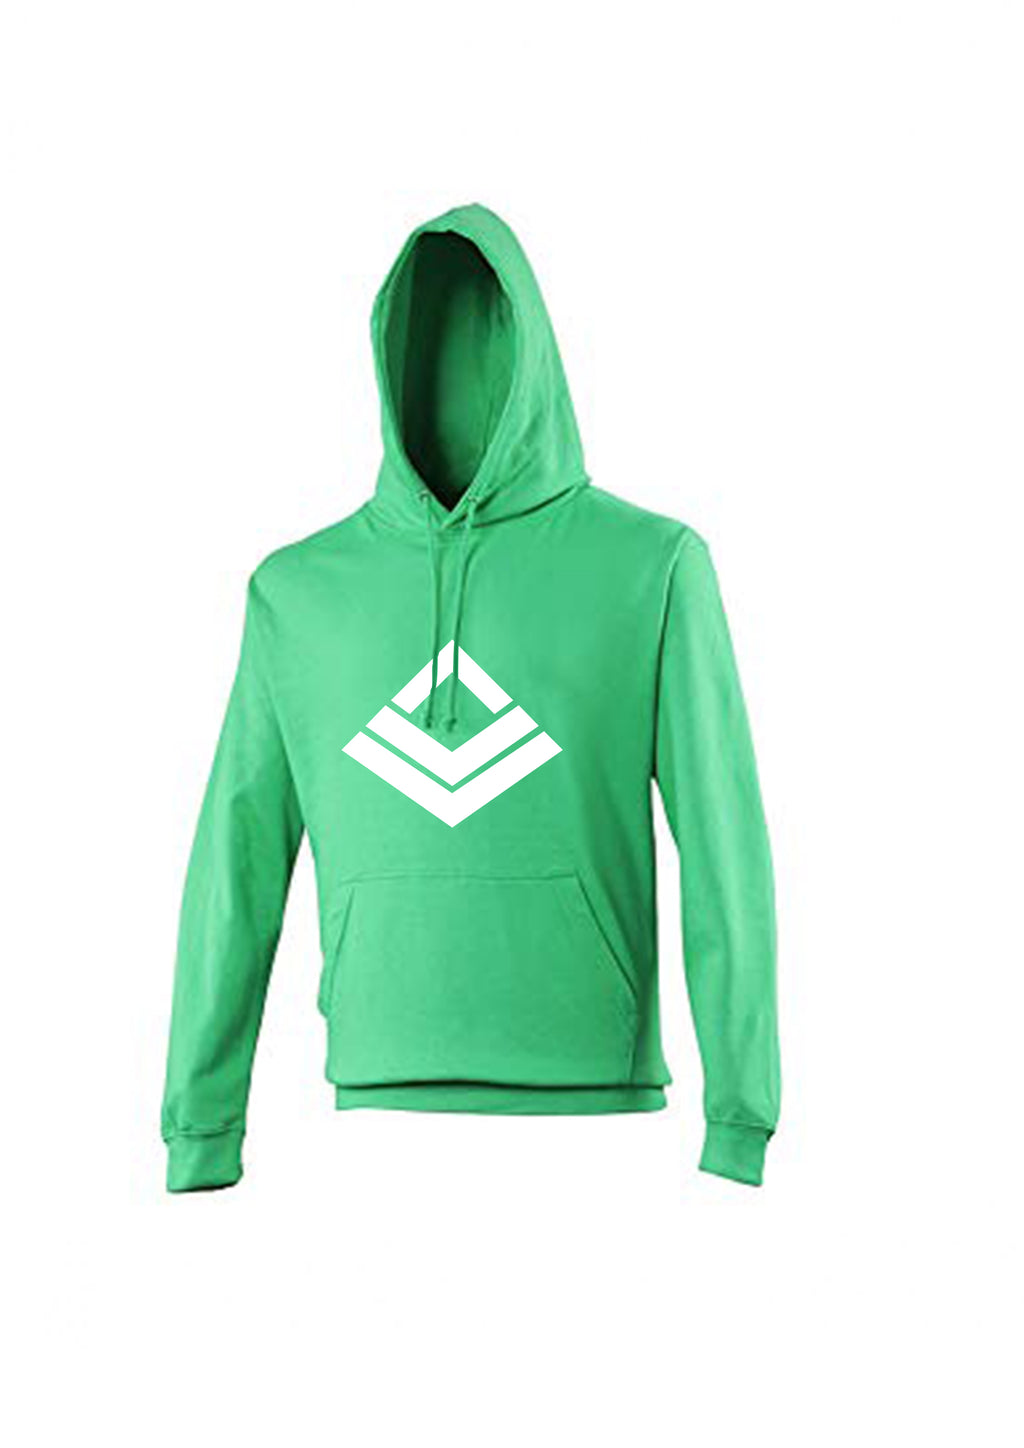 Swaggerlicious Athlete Green Hoodie - swaggerlicious-clothing.com